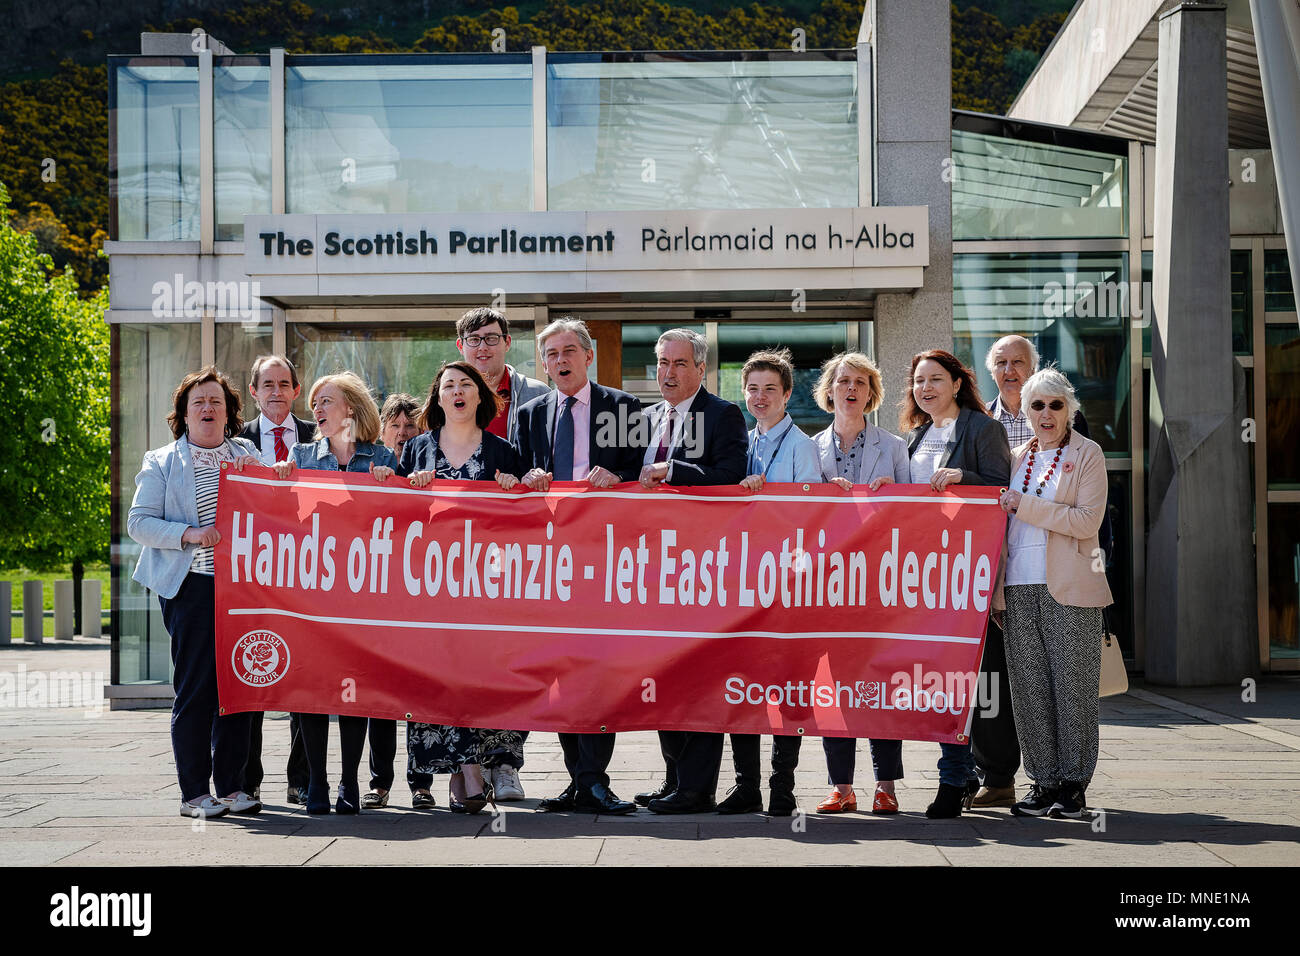 Edinburgh, UK. May  16 2018; Local activists are joined by Scottish Labour Leader Richard Leonard and MSP Monica Lennon to demonstrate outside the parliament and present Iain Gray MSP with a petition that will later be handed in to SNP Planning Minister Kevin Stewart urging him to rethink the decision to call-in the Cockenzie planning application    credit steven scott taylor / alamy live news - Stock Image